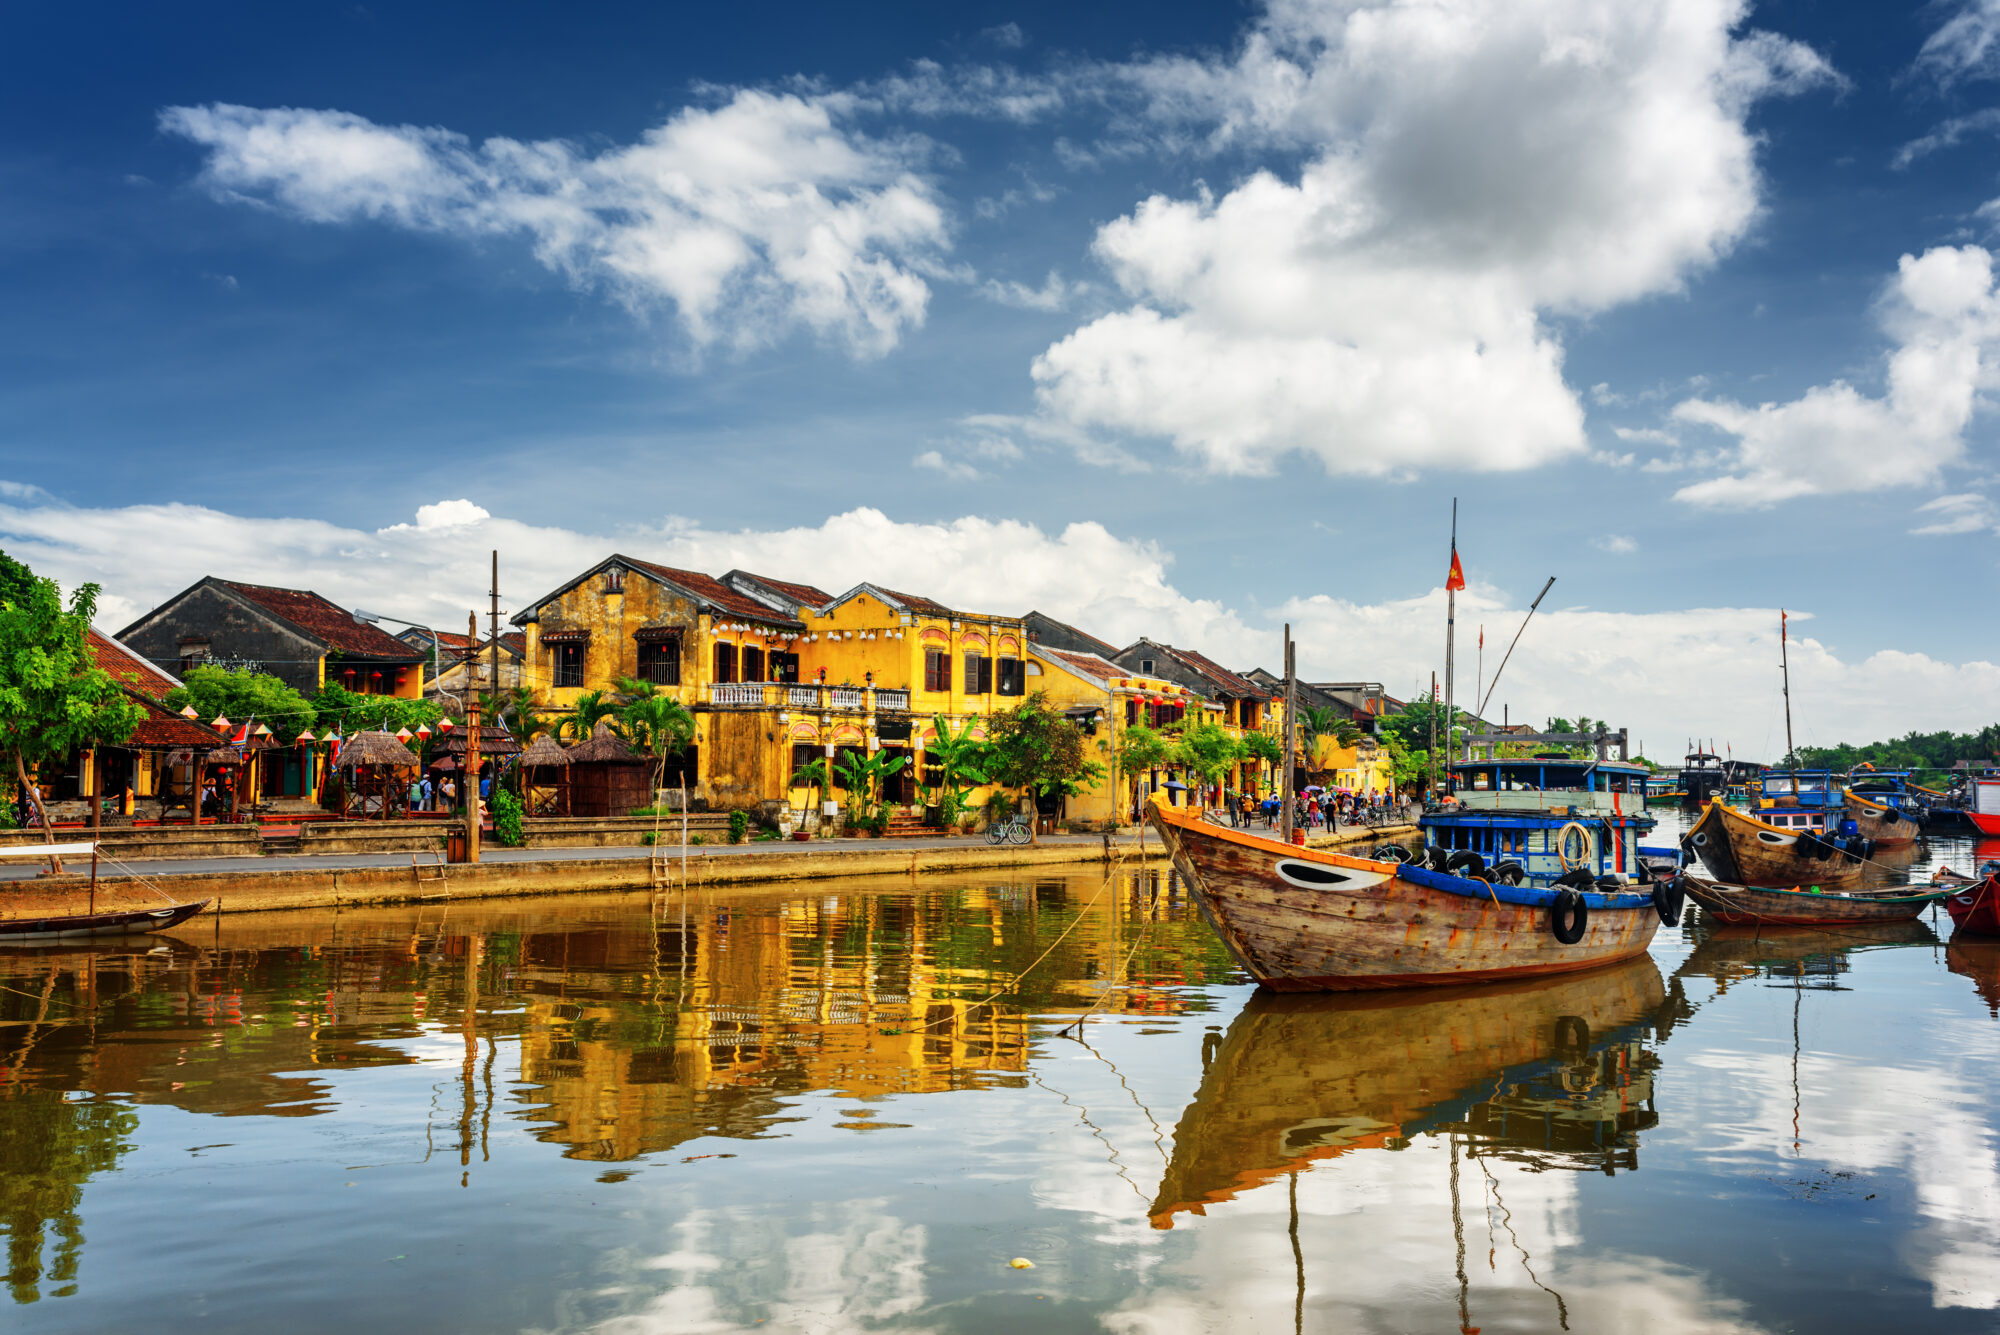 wooden boats in front of Hoi An in Vietnam